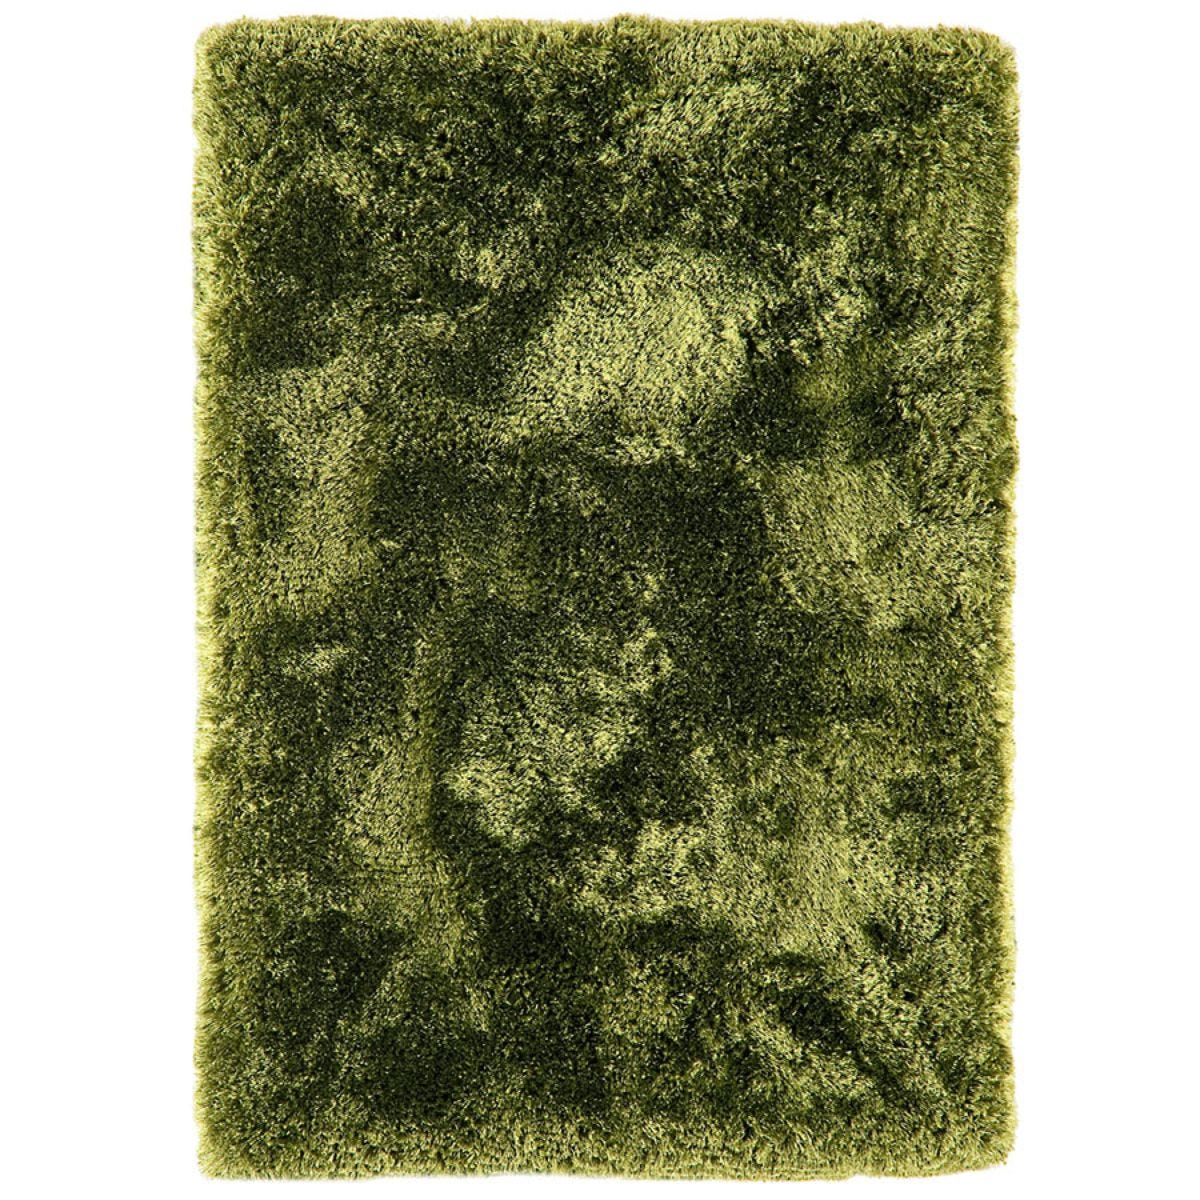 Asiatic Plush Shaggy Rug, 140 x 200cm - Green